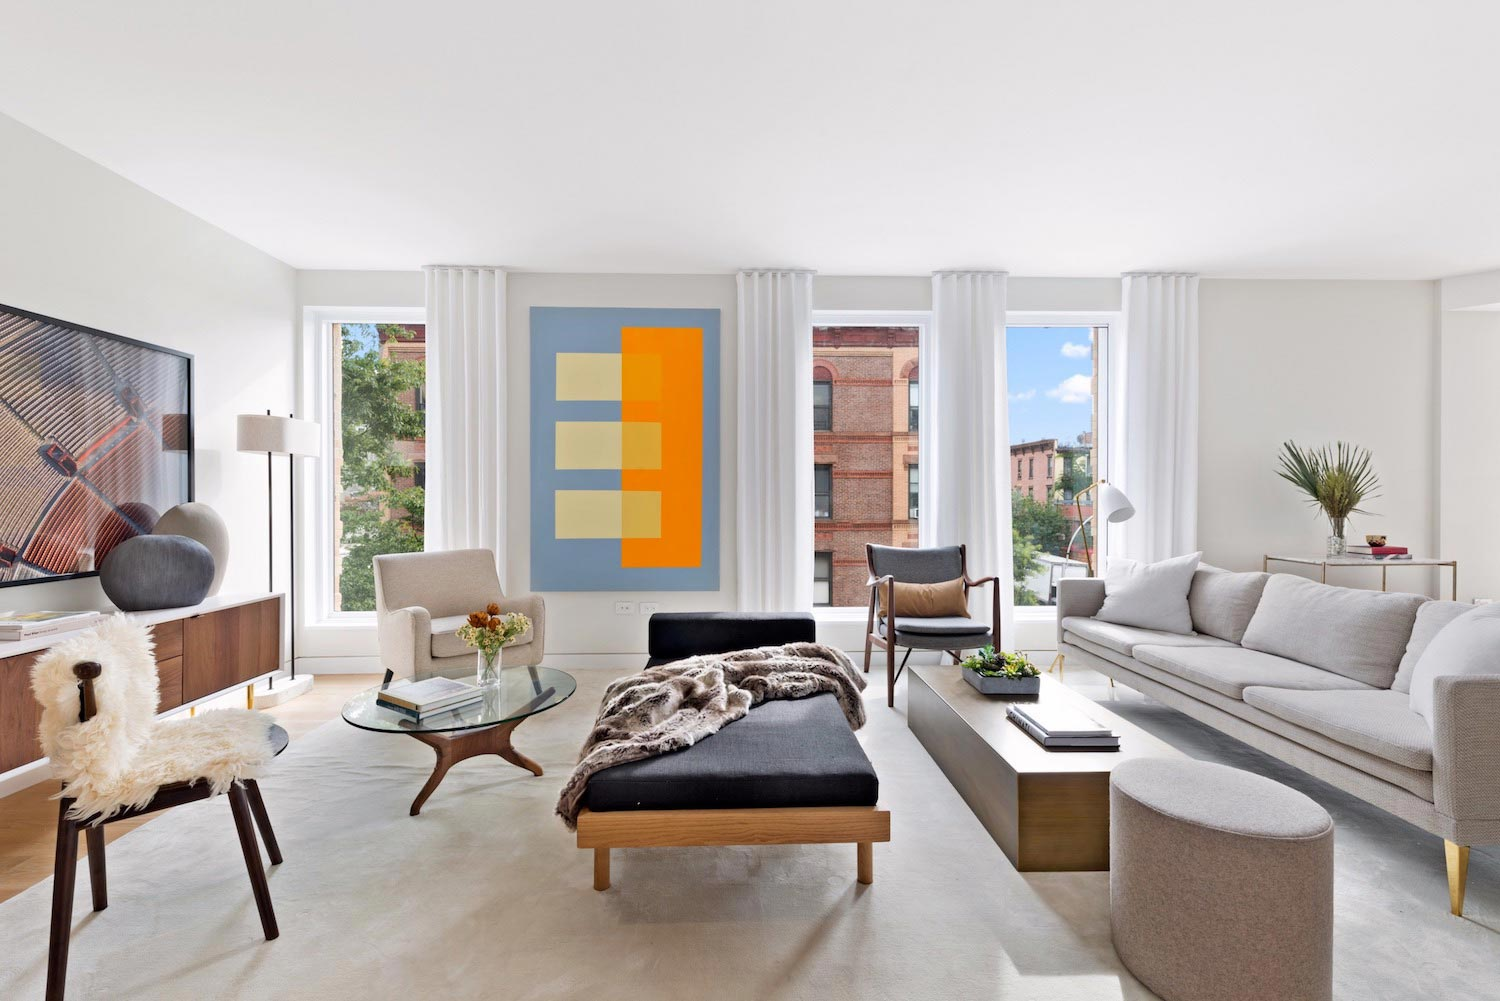 Warm Contemporary Apartment Living Park Slope Brooklyn Designed Ash Nyc  Caandesign 01